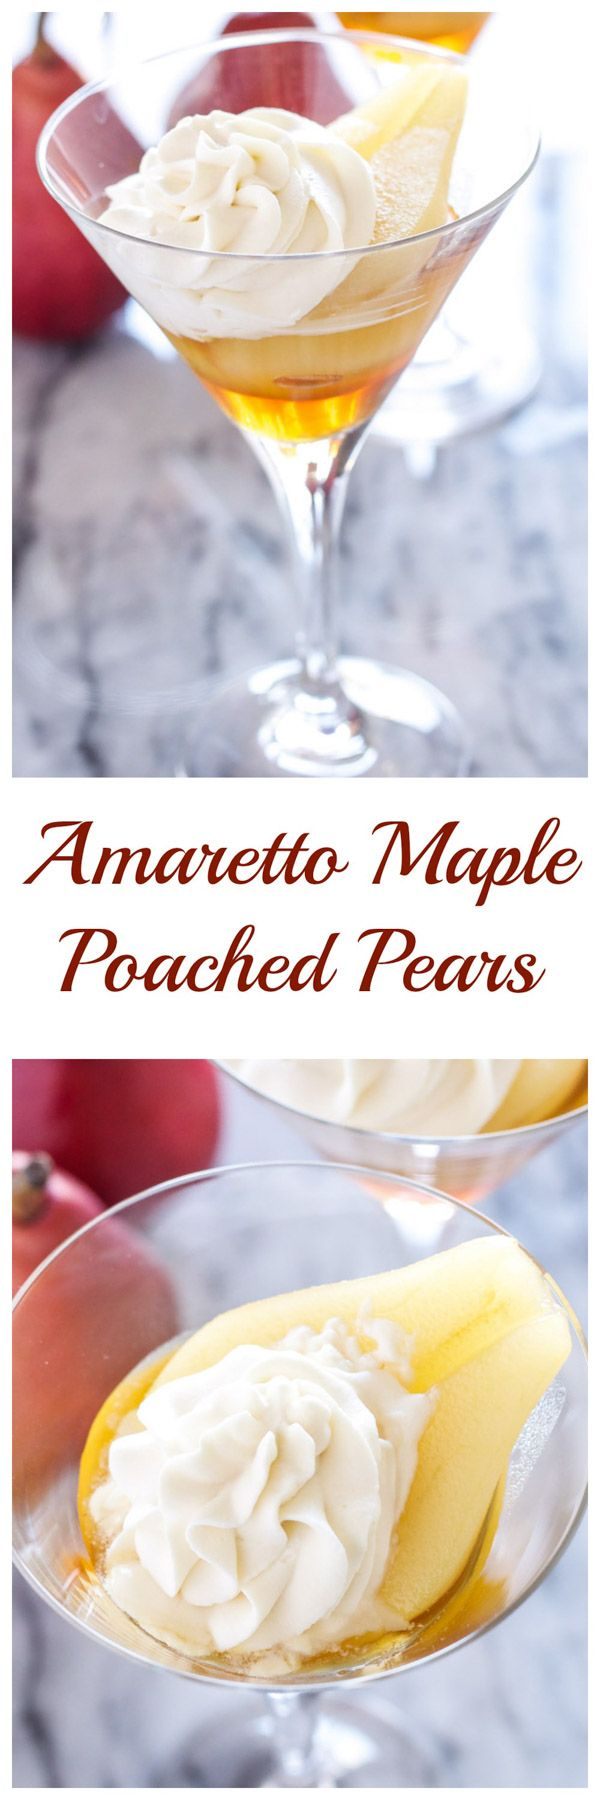 Amaretto Maple Poached Pears | Recipe Runner | Pears are perfect for poaching! The amaretto maple combo is the best I've ever had! #CleverlyPoached #CleverGirls